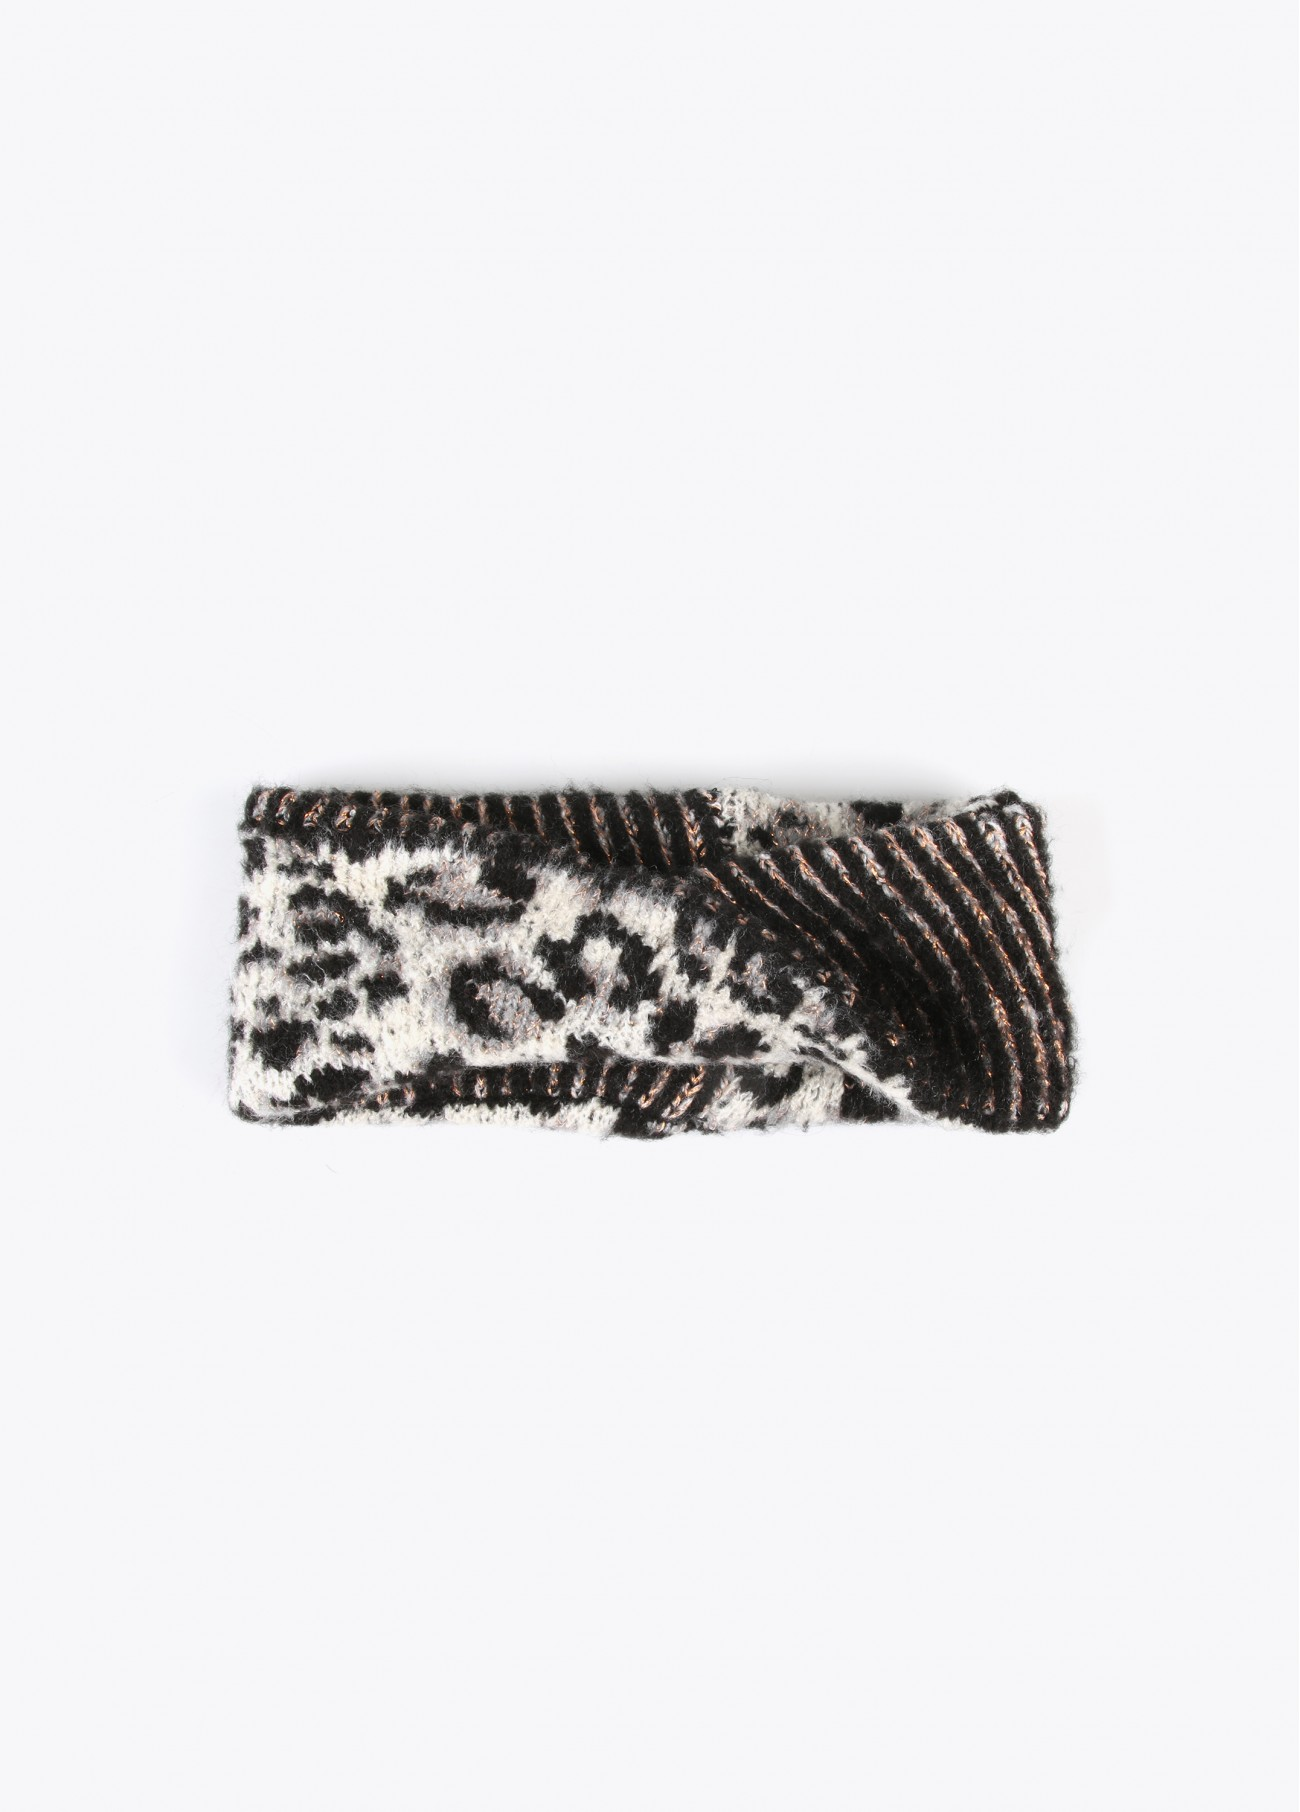 Turbante de punto estampado leopardo, estampado 2